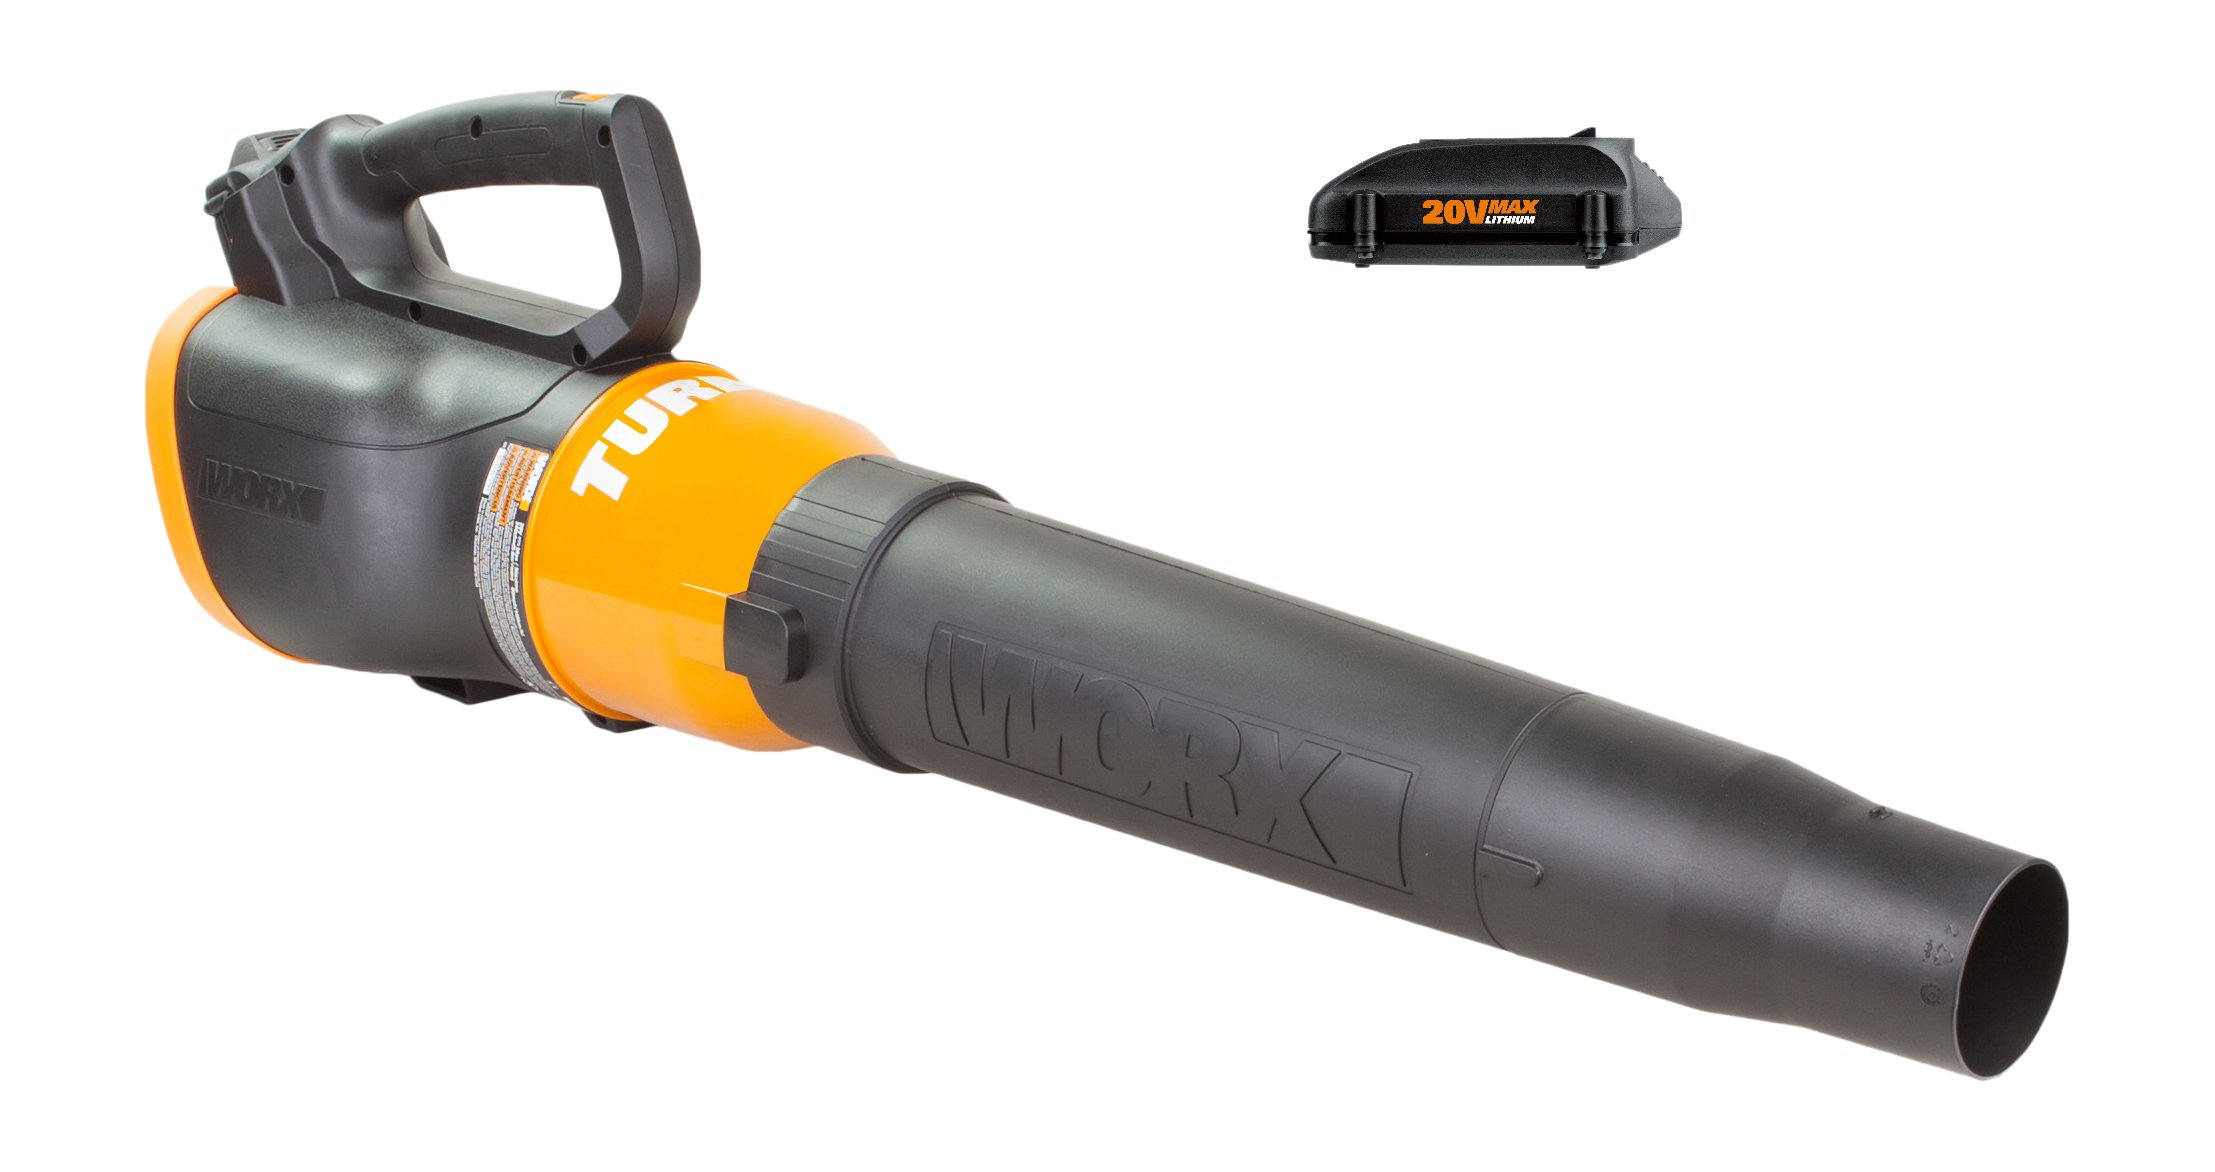 WORX WG546.2 TURBINE 20V Cordless Blower/Sweeper with 340 CFM 2-Speed Axial Fan with 2 Batteries and Charger Included